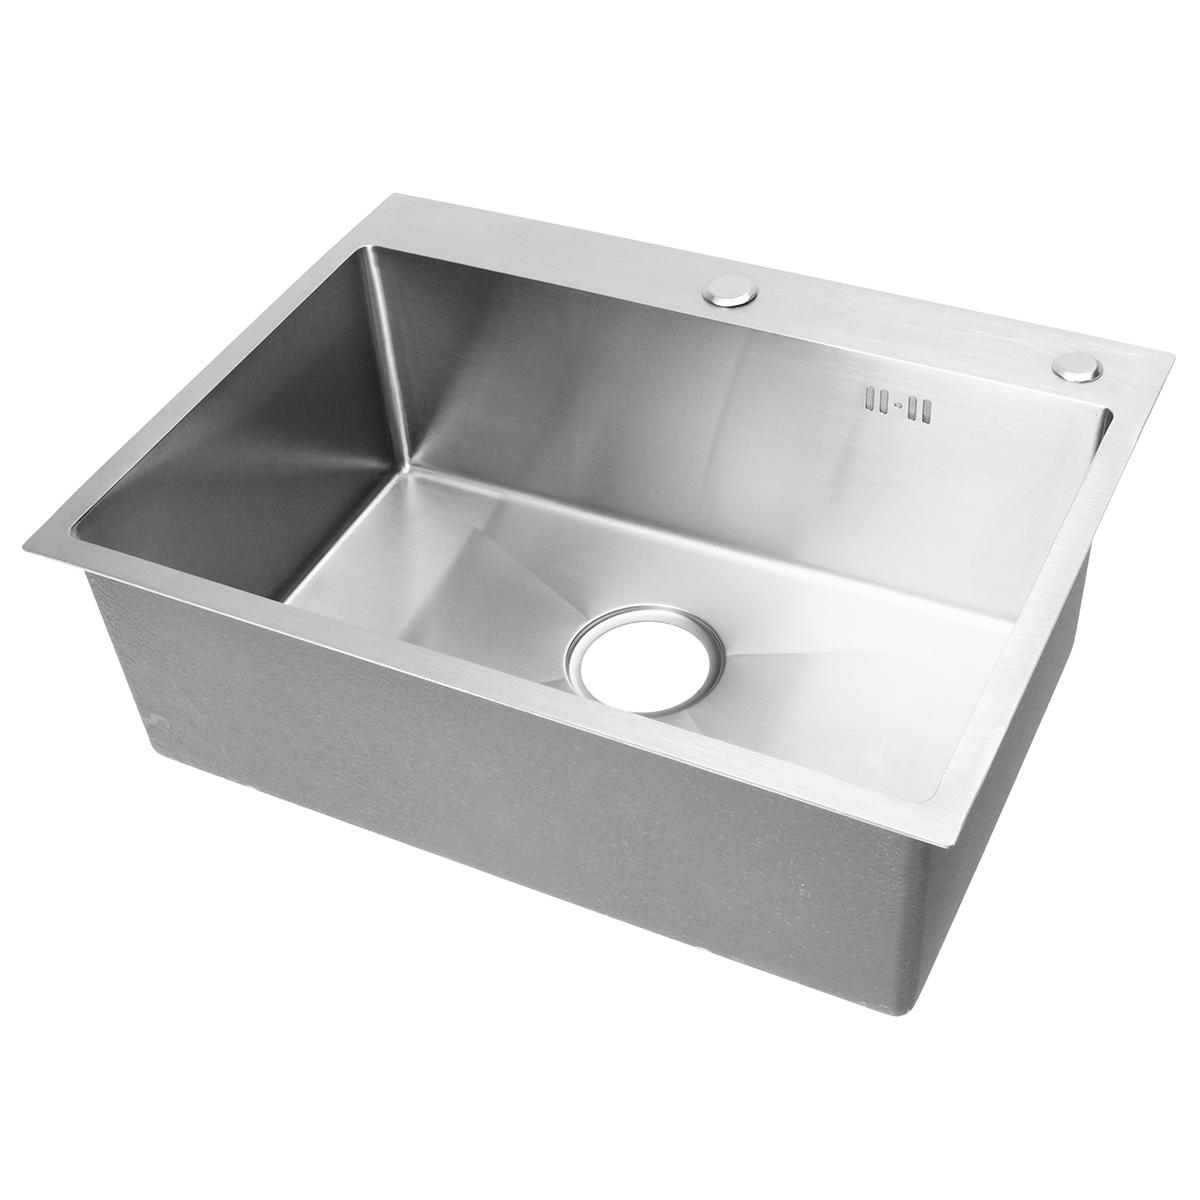 Stainless Steel Single Bowl Kitchen Sinks Commercial Home Top